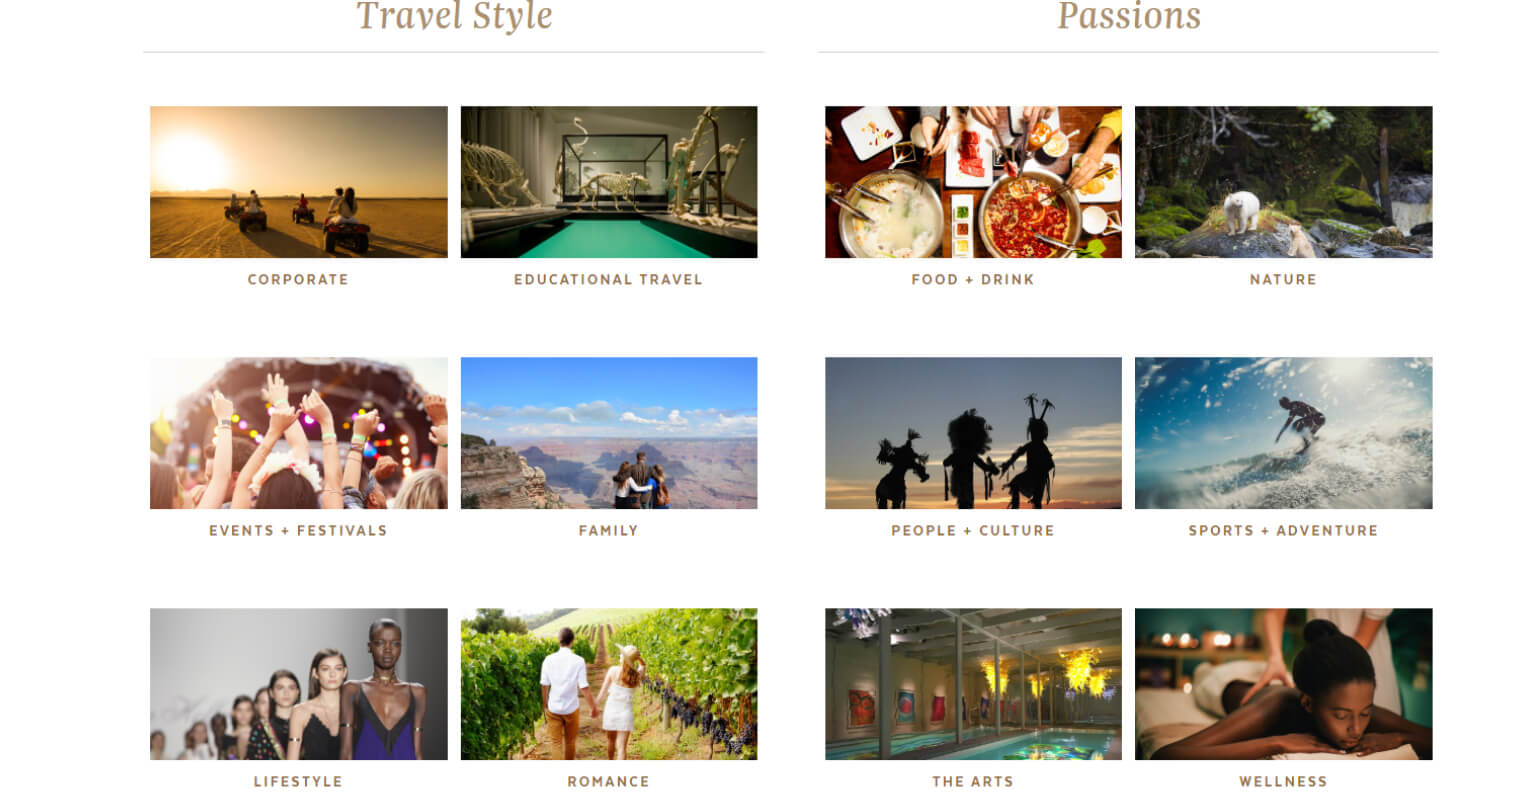 Excursionist Where The Luxury Experiential Travels Are Found- Body Image 6